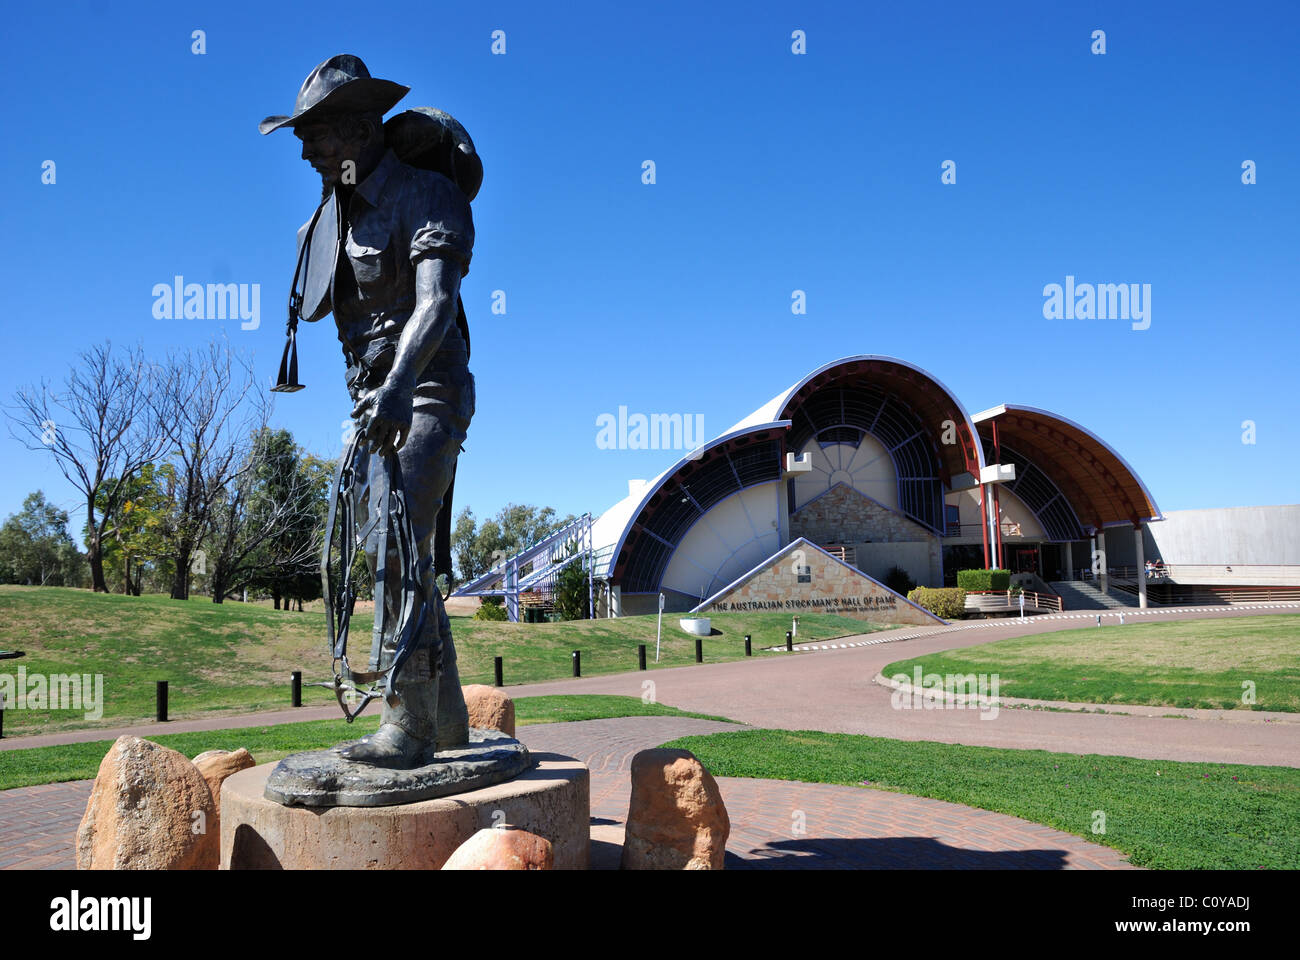 Stockman statue with Stockman's Hall of Fame building in the background, Longreach, Queensland, Australia. - Stock Image